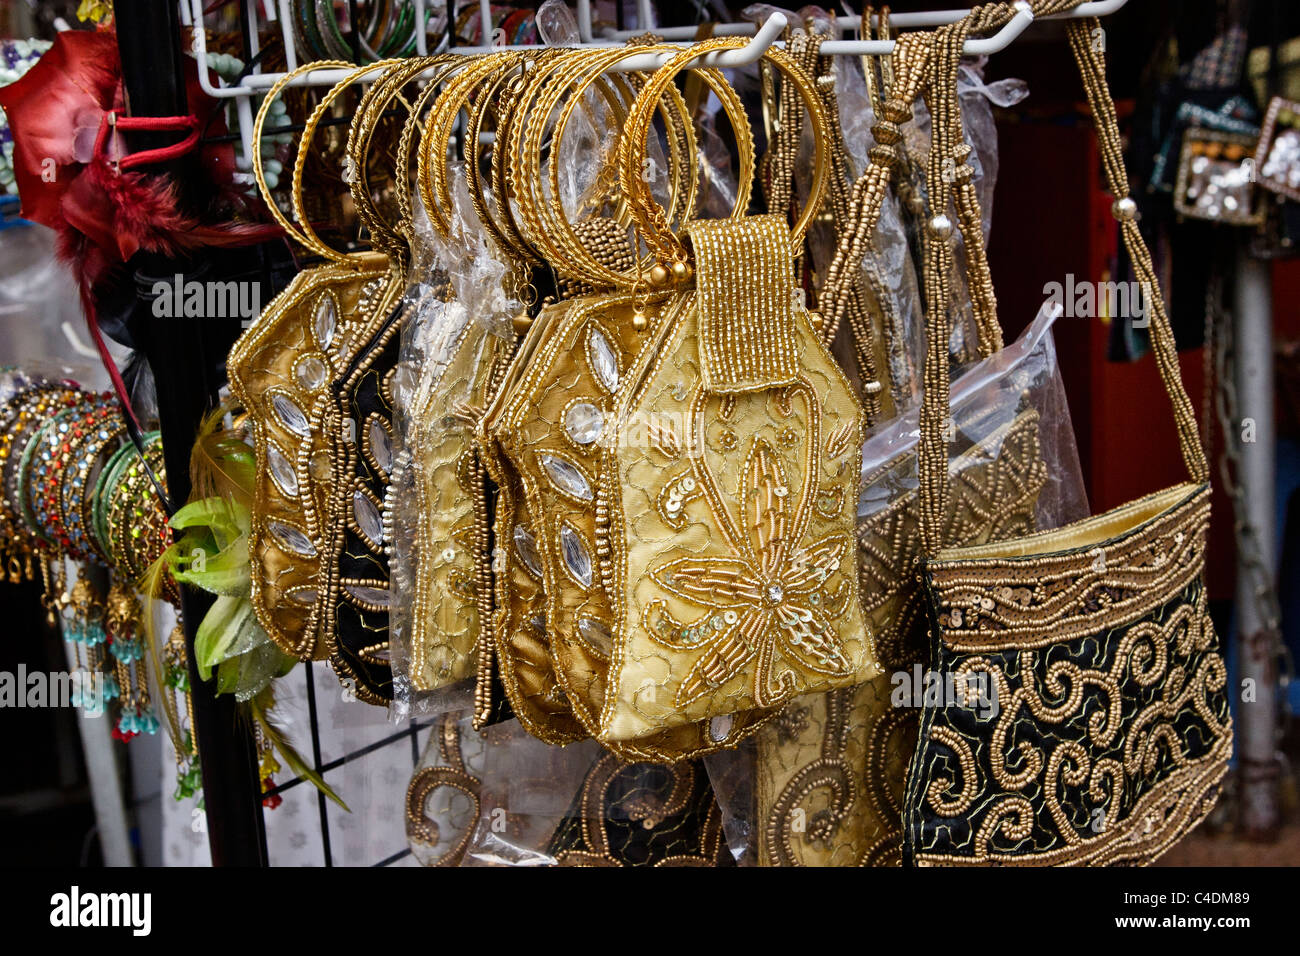 Ladies Handbags On Sale In Chinatown Market On Pagoda Street Stock